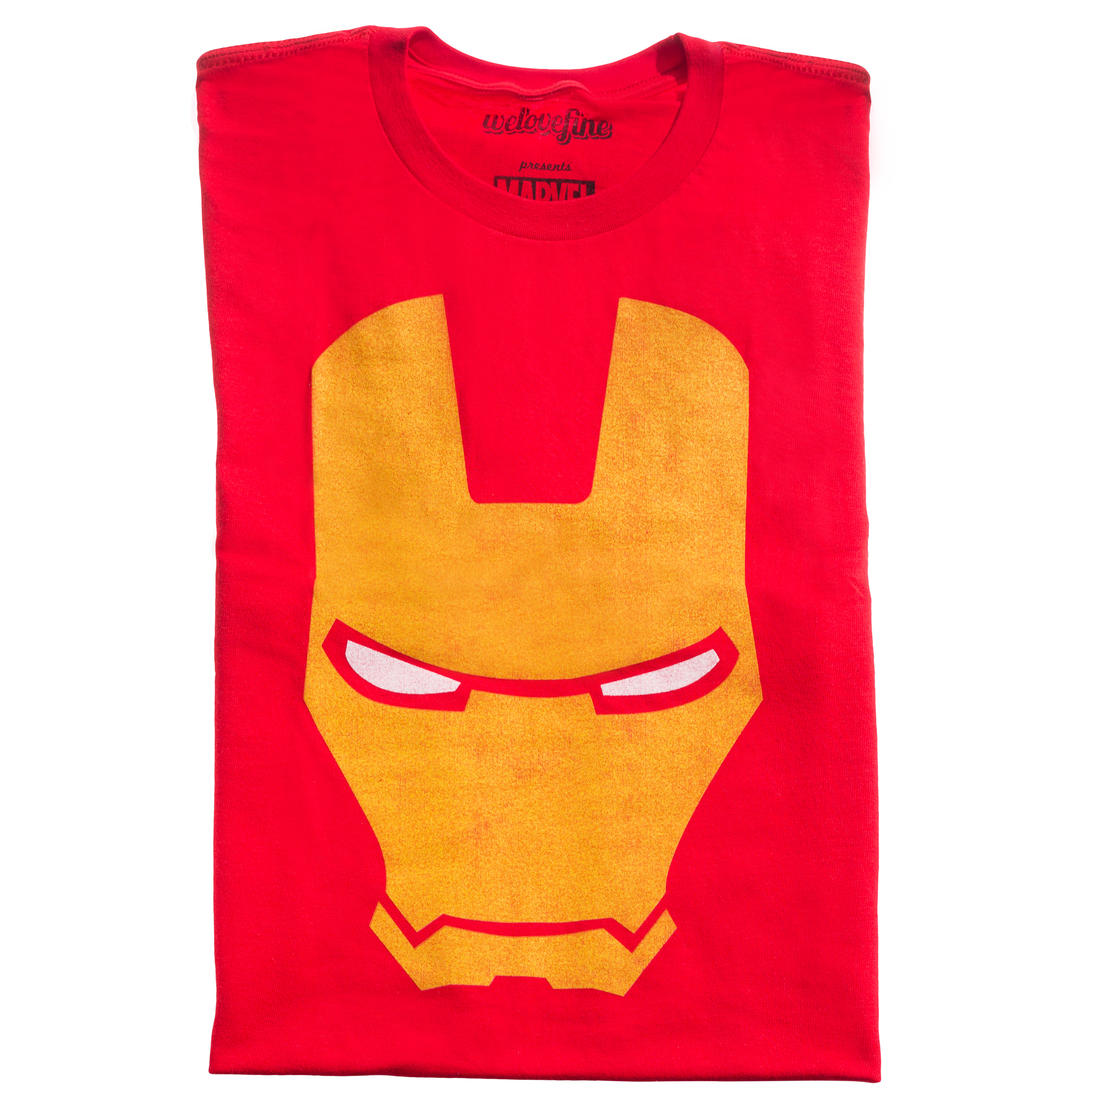 Simple iron man t shirt getdigital for Iron man shirt for men